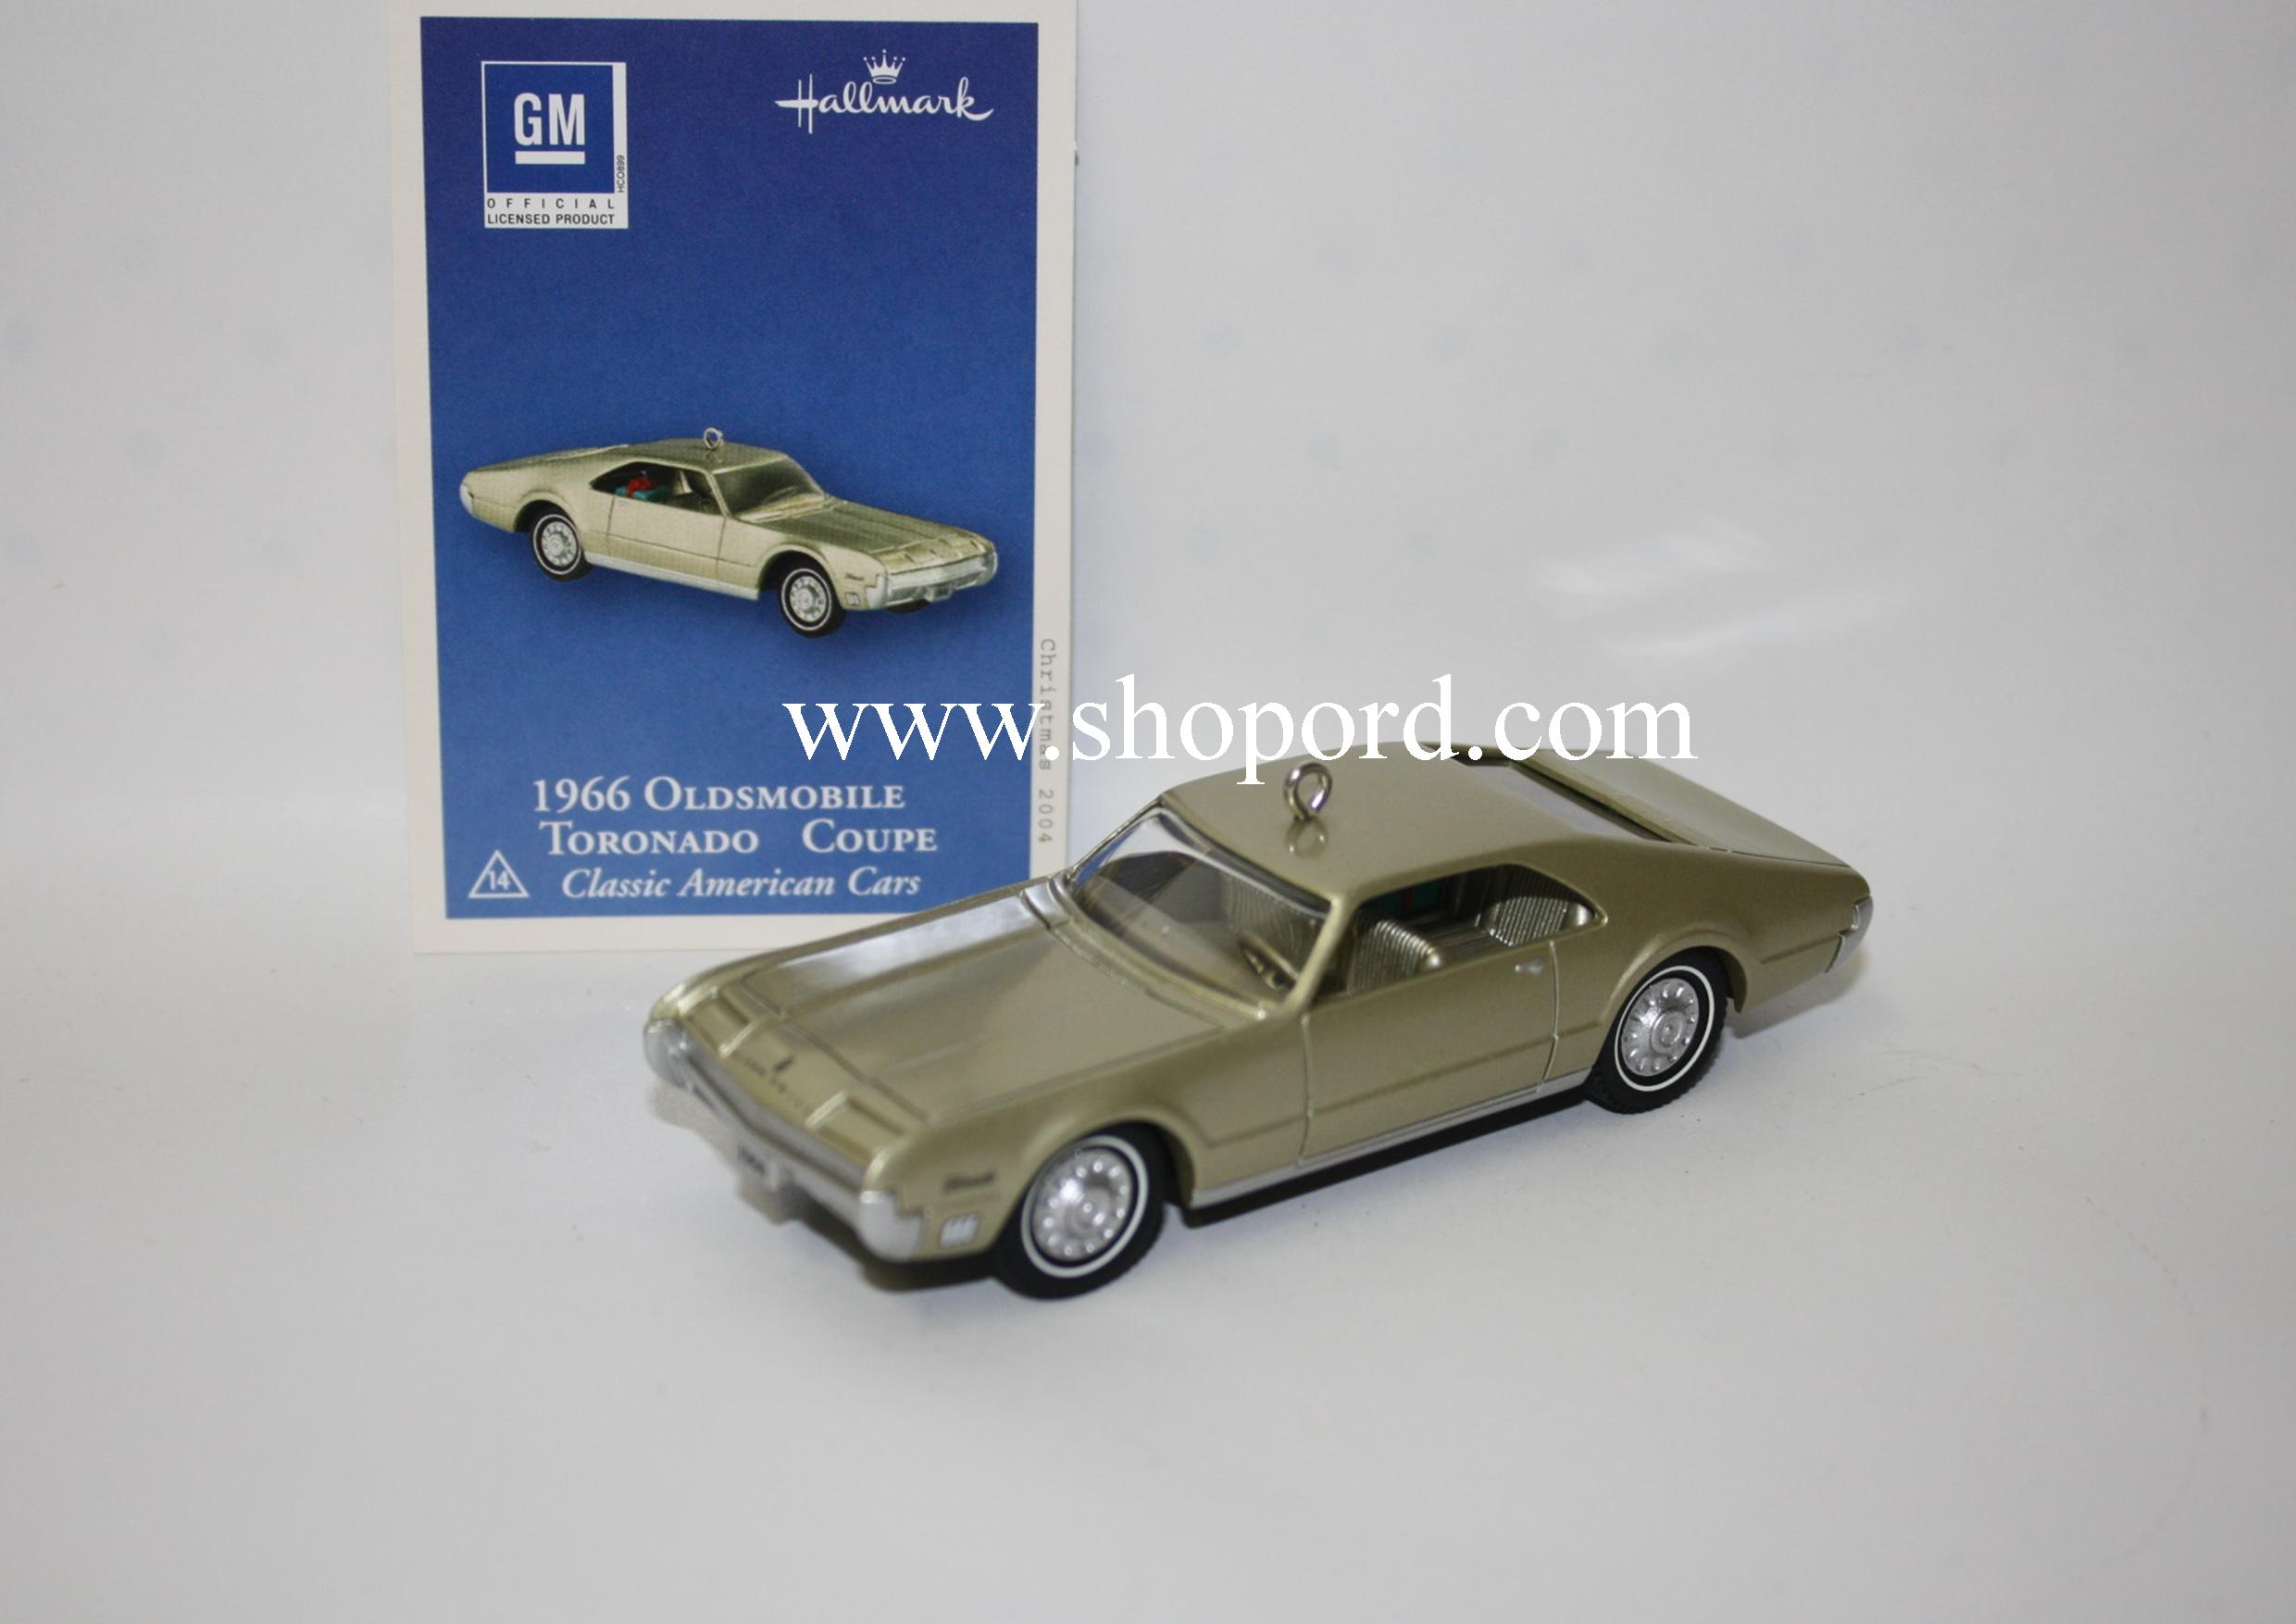 Hallmark 1966 Oldsmobile Toronado Coupe 2004 Ornament 14rh in the Classic American Cars Series QX8151